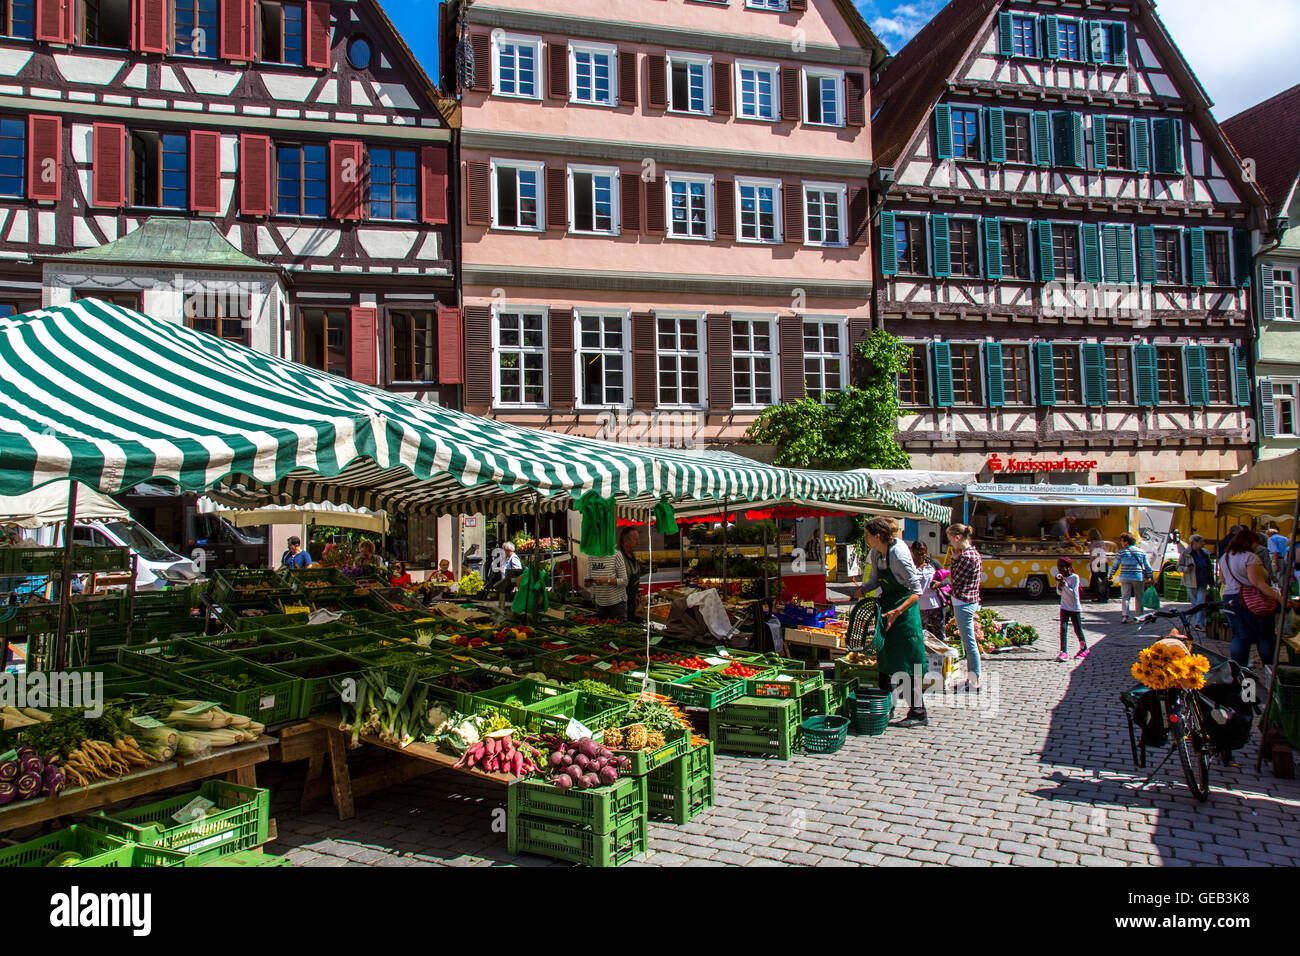 Fresh weekly farmers market on the historic market place, in the old town of Tübingen, Germany - Stock Image